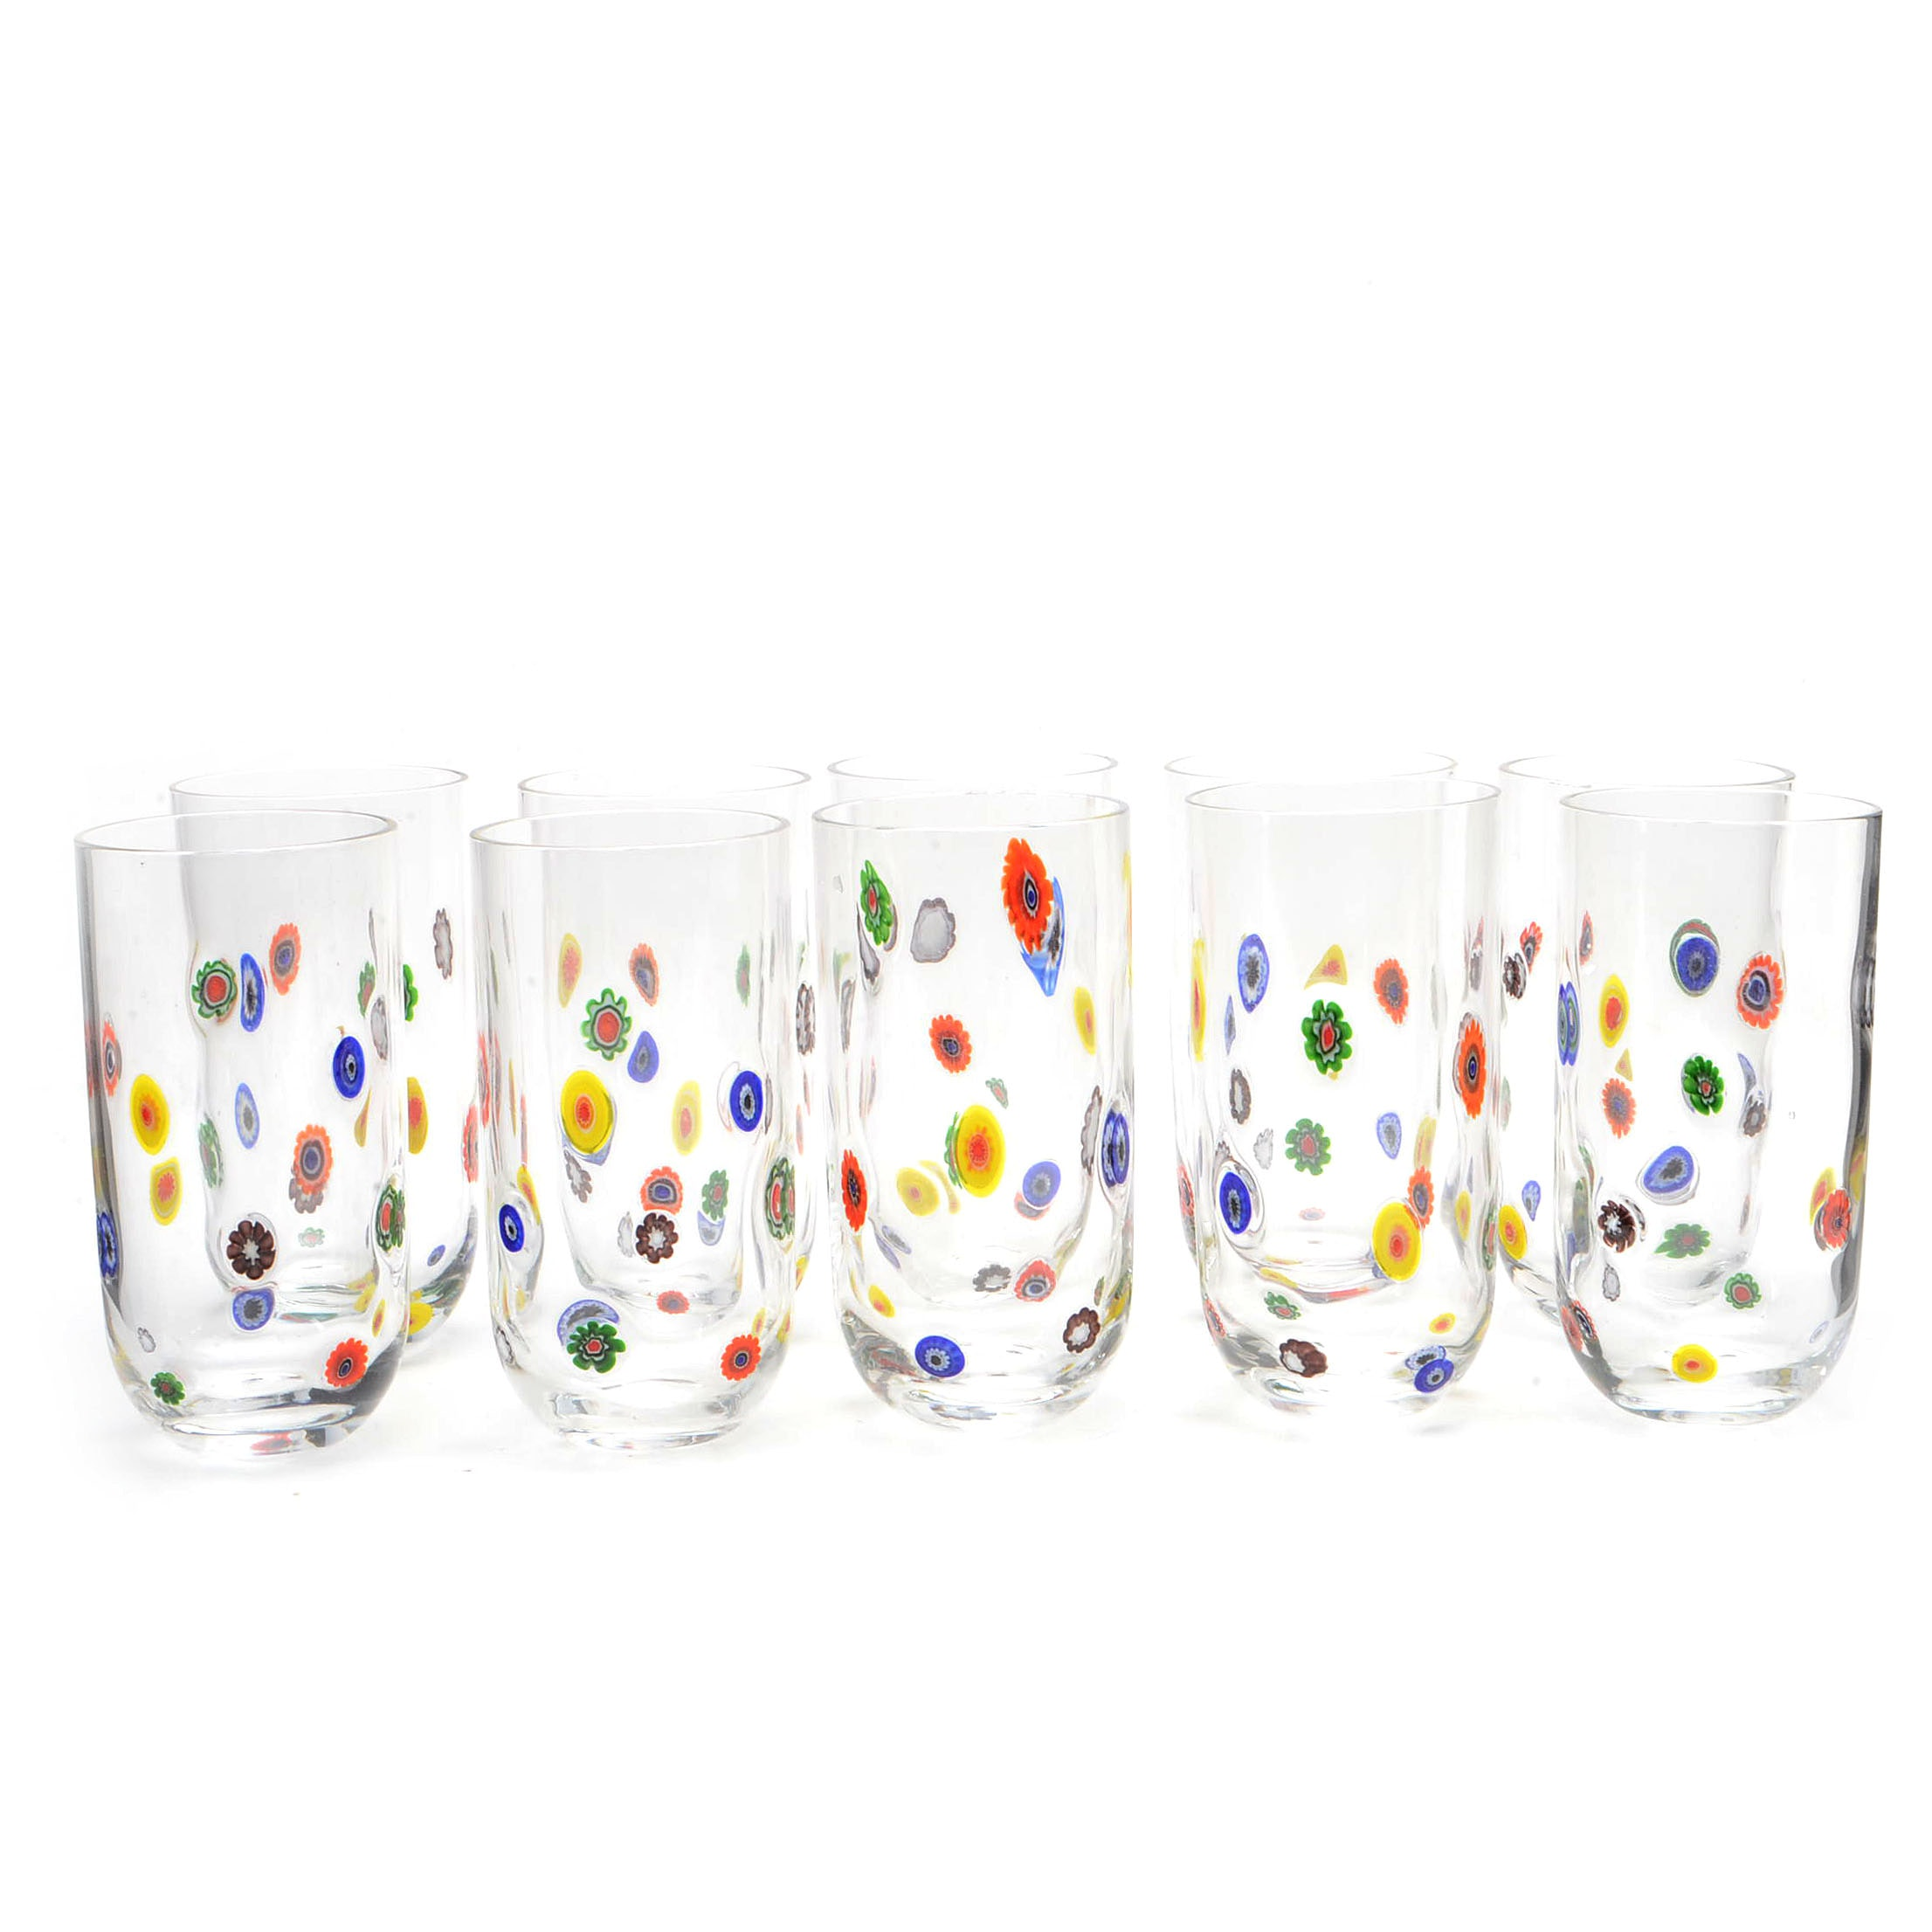 Collection of Vintage Murano Style Glass Tumblers